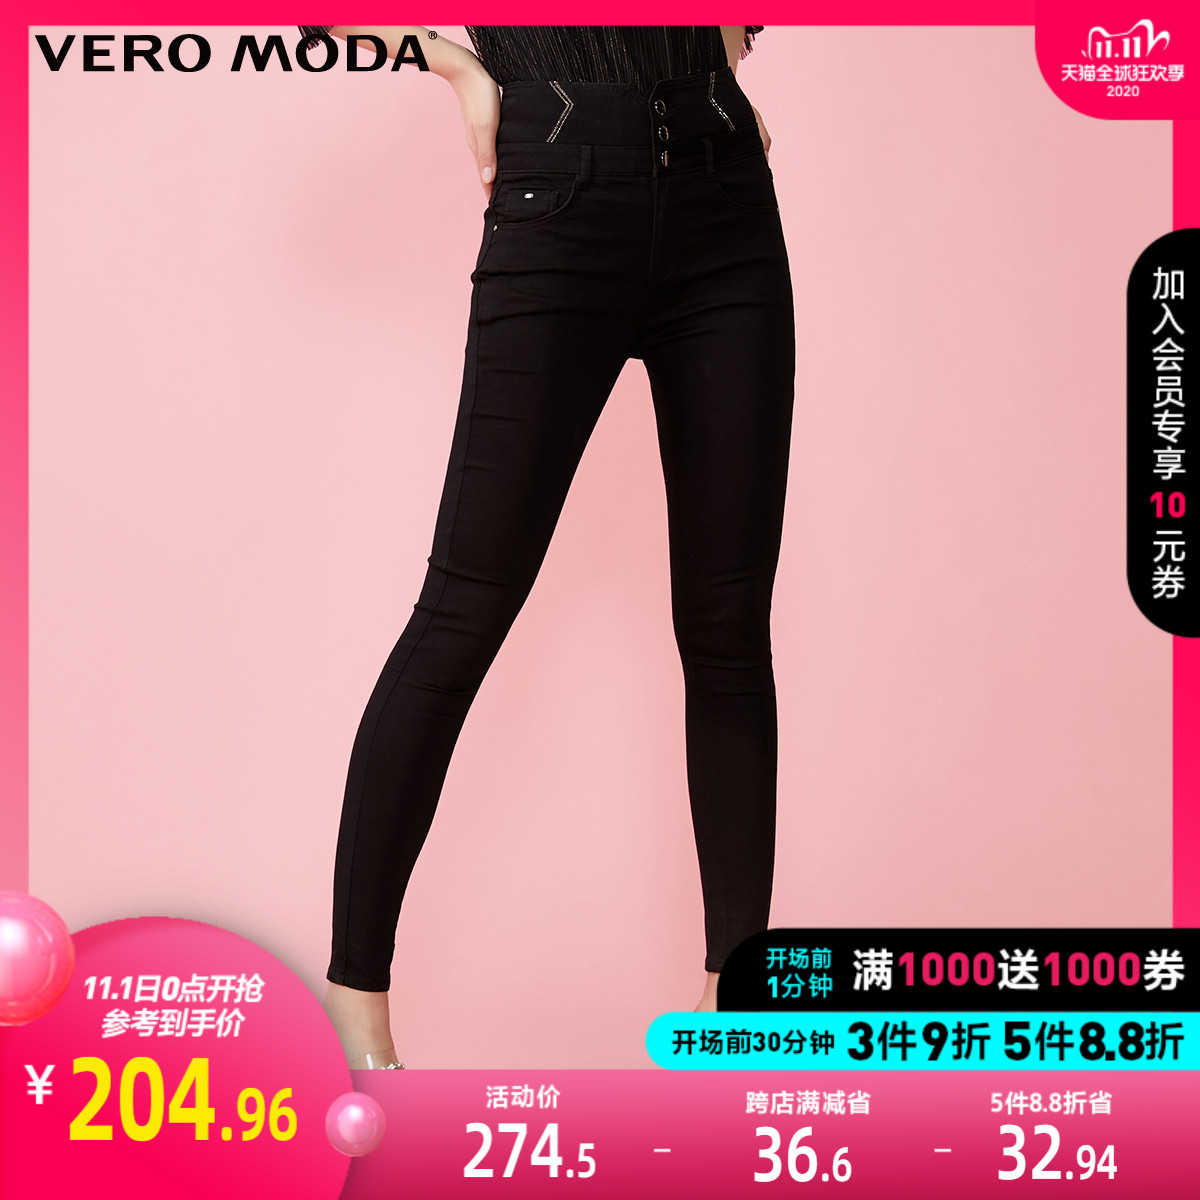 Vero Moda2020 new autumn high waist nail diamond decoration skinny jeans women 320132522